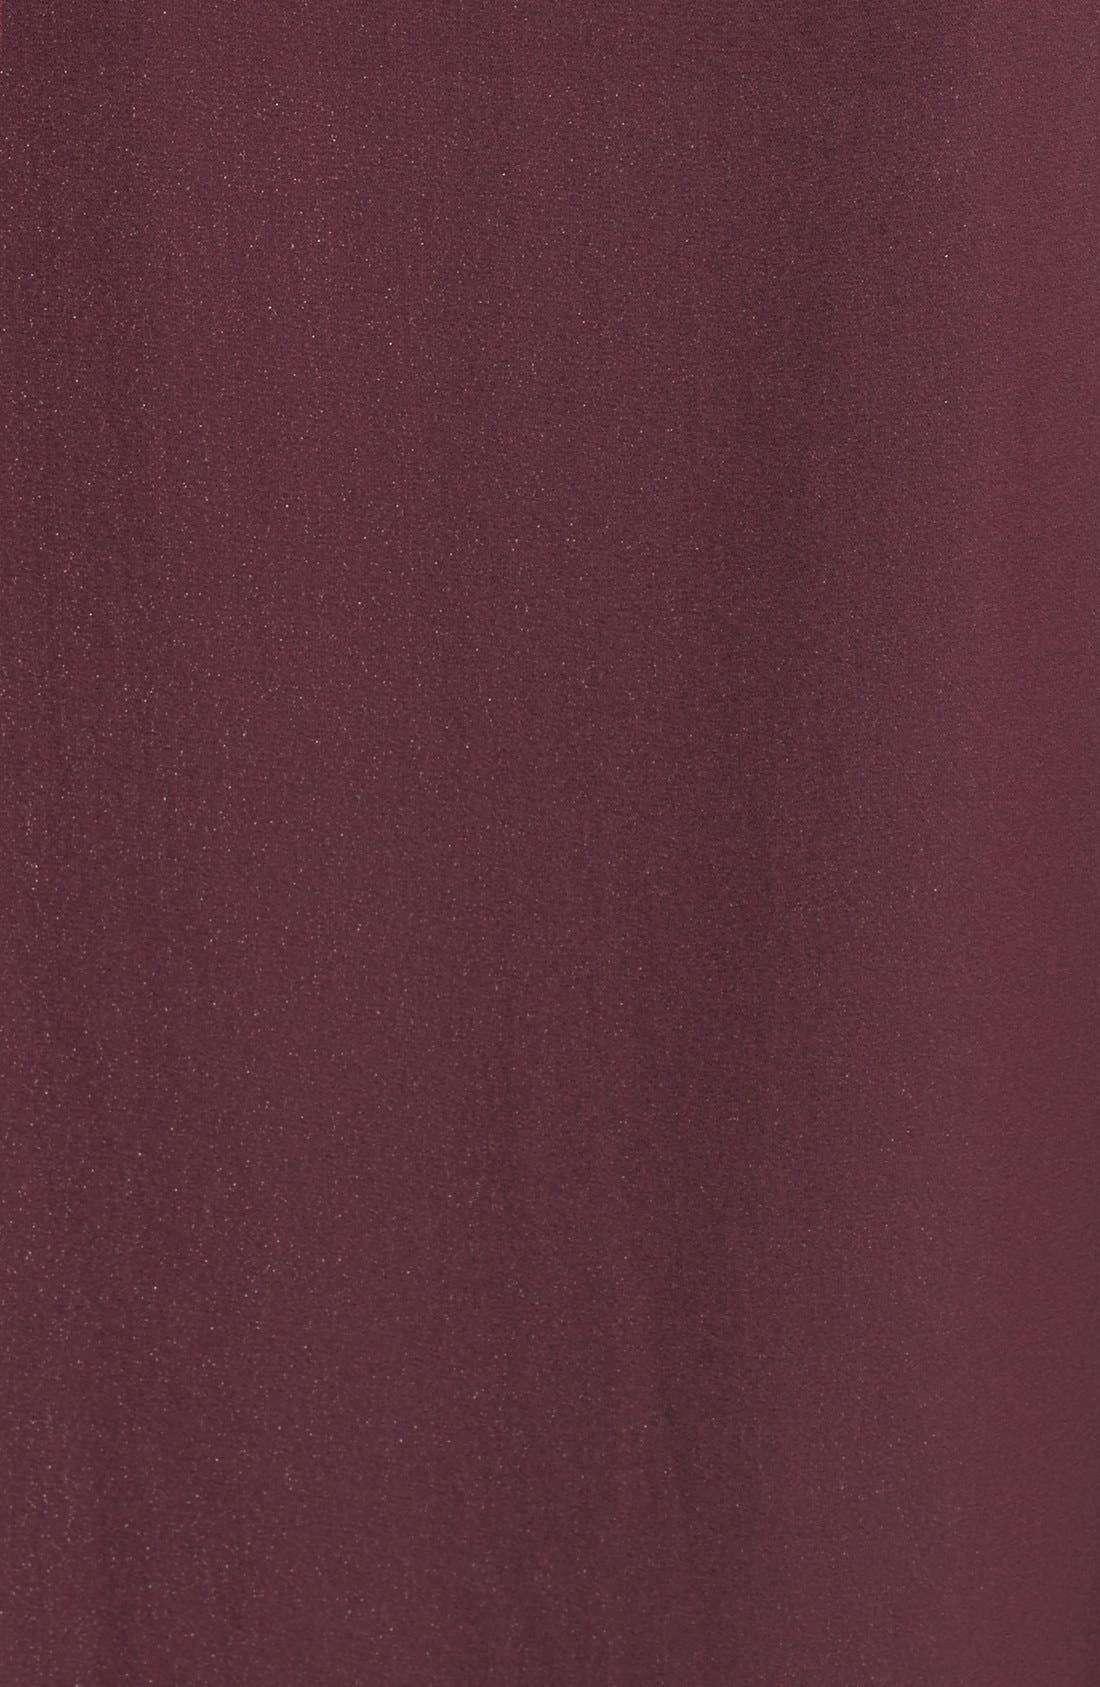 Bell Cuff High/Low Blouse,                             Alternate thumbnail 5, color,                             Burgundy Stem